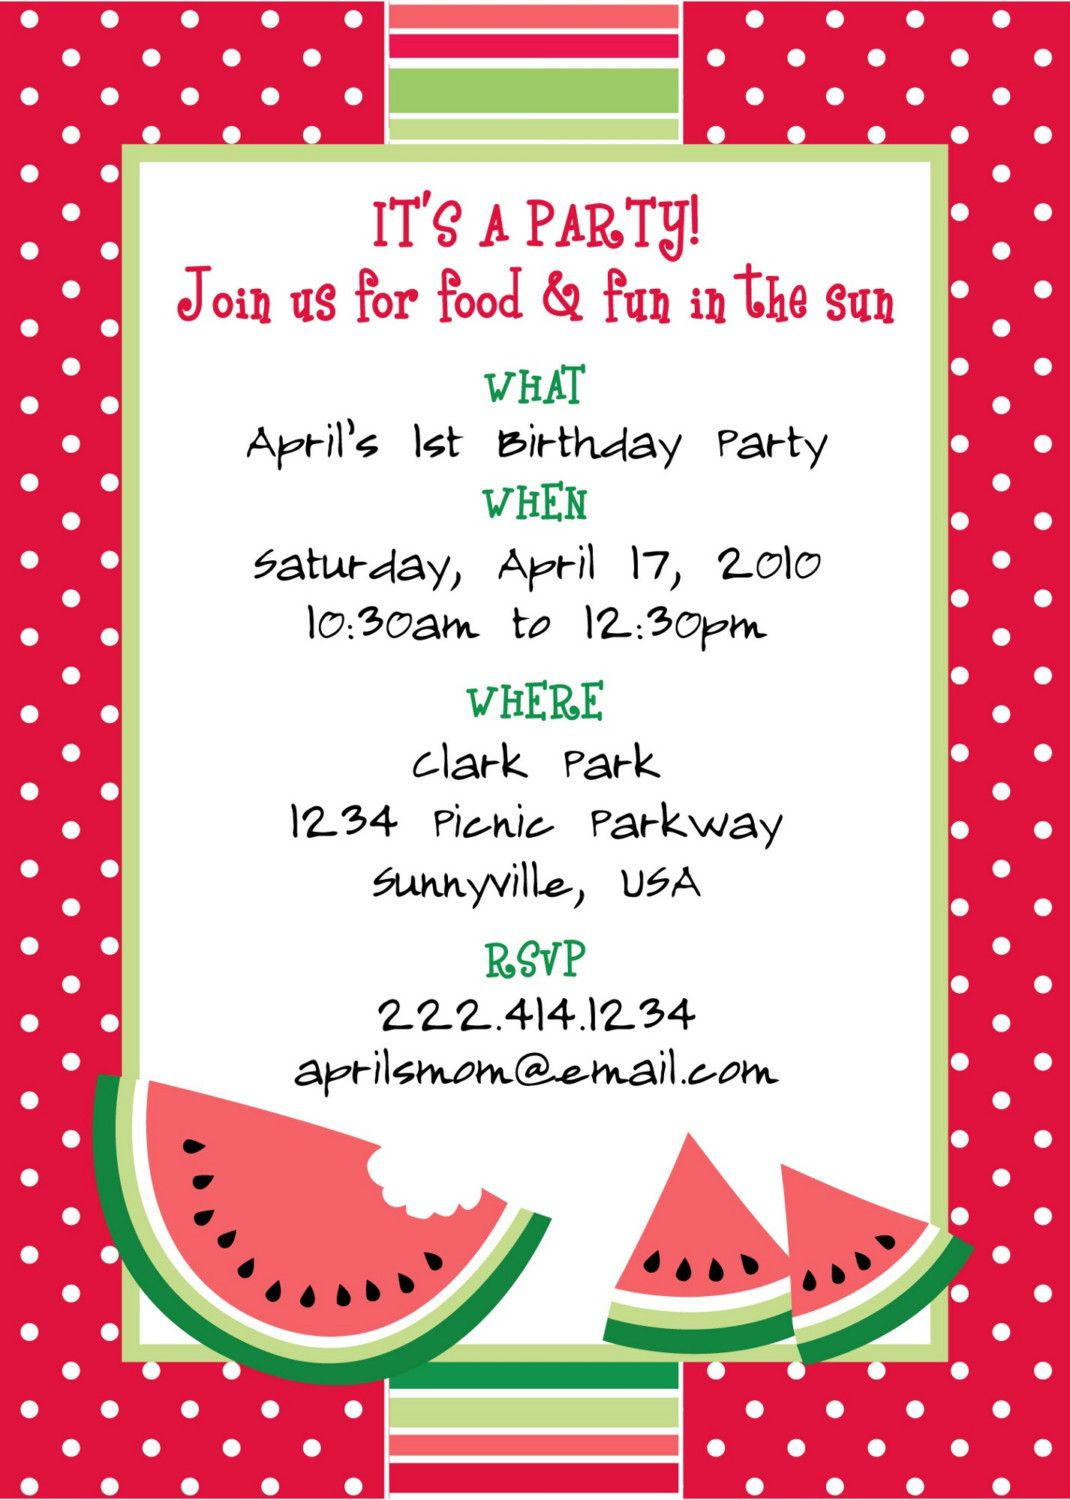 Picnic Invitations Pdf - Invitation Templates